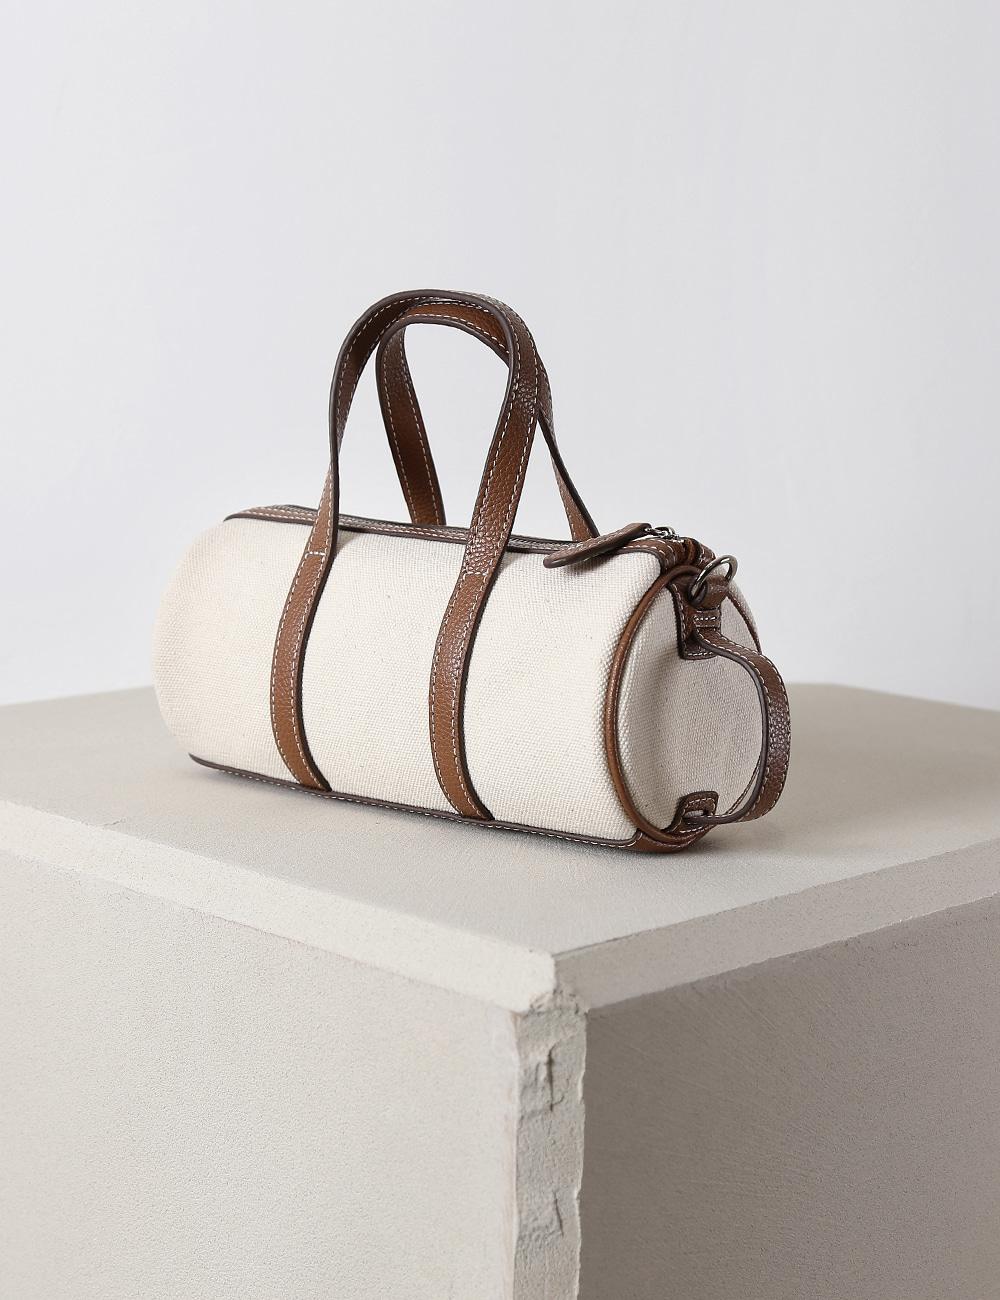 MAISON246,246 BARREL CANVAS BAG - TAN,No.246